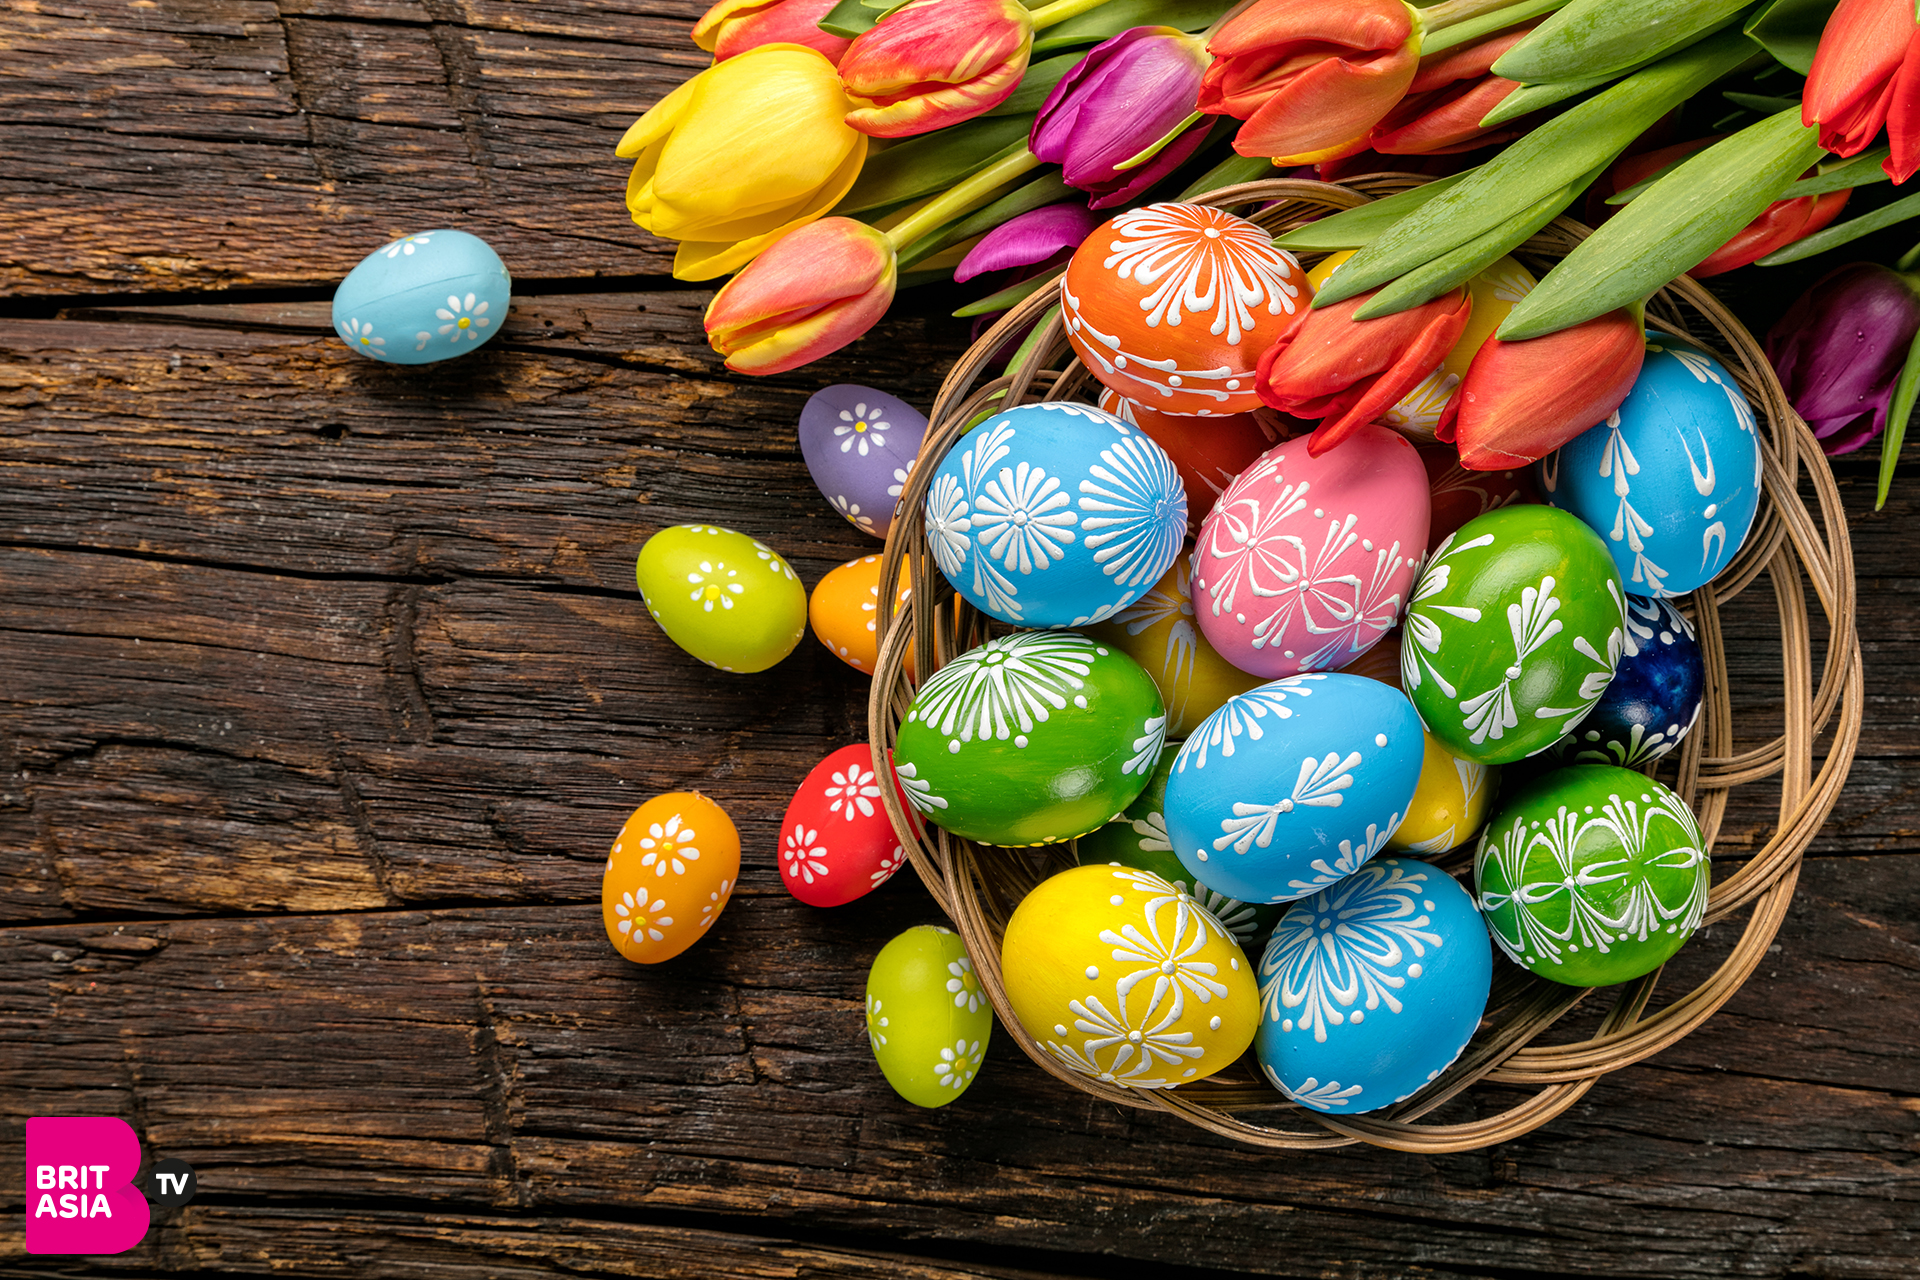 Flowers and chocolate at Easter